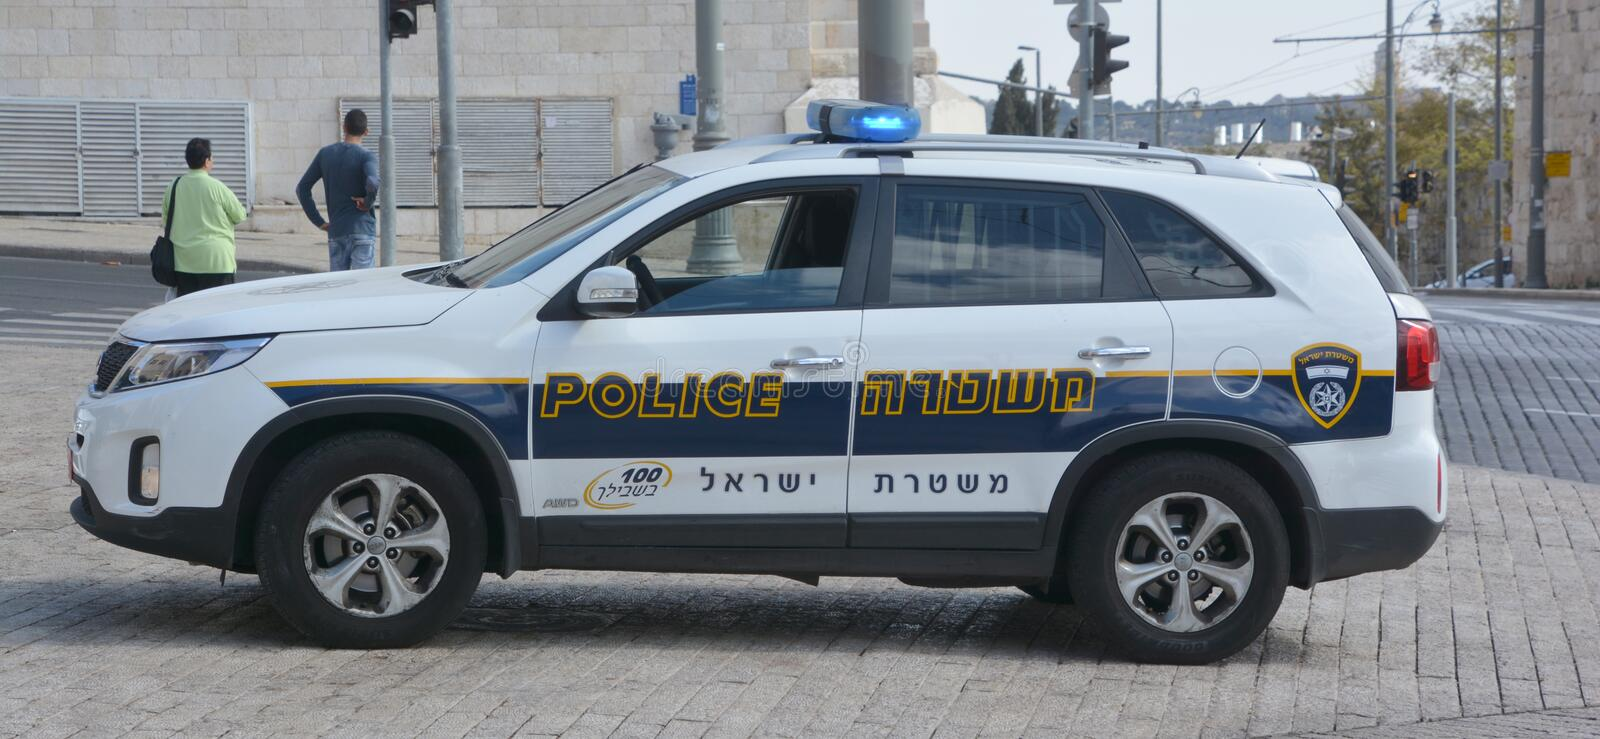 The Israel Police royalty free stock photography